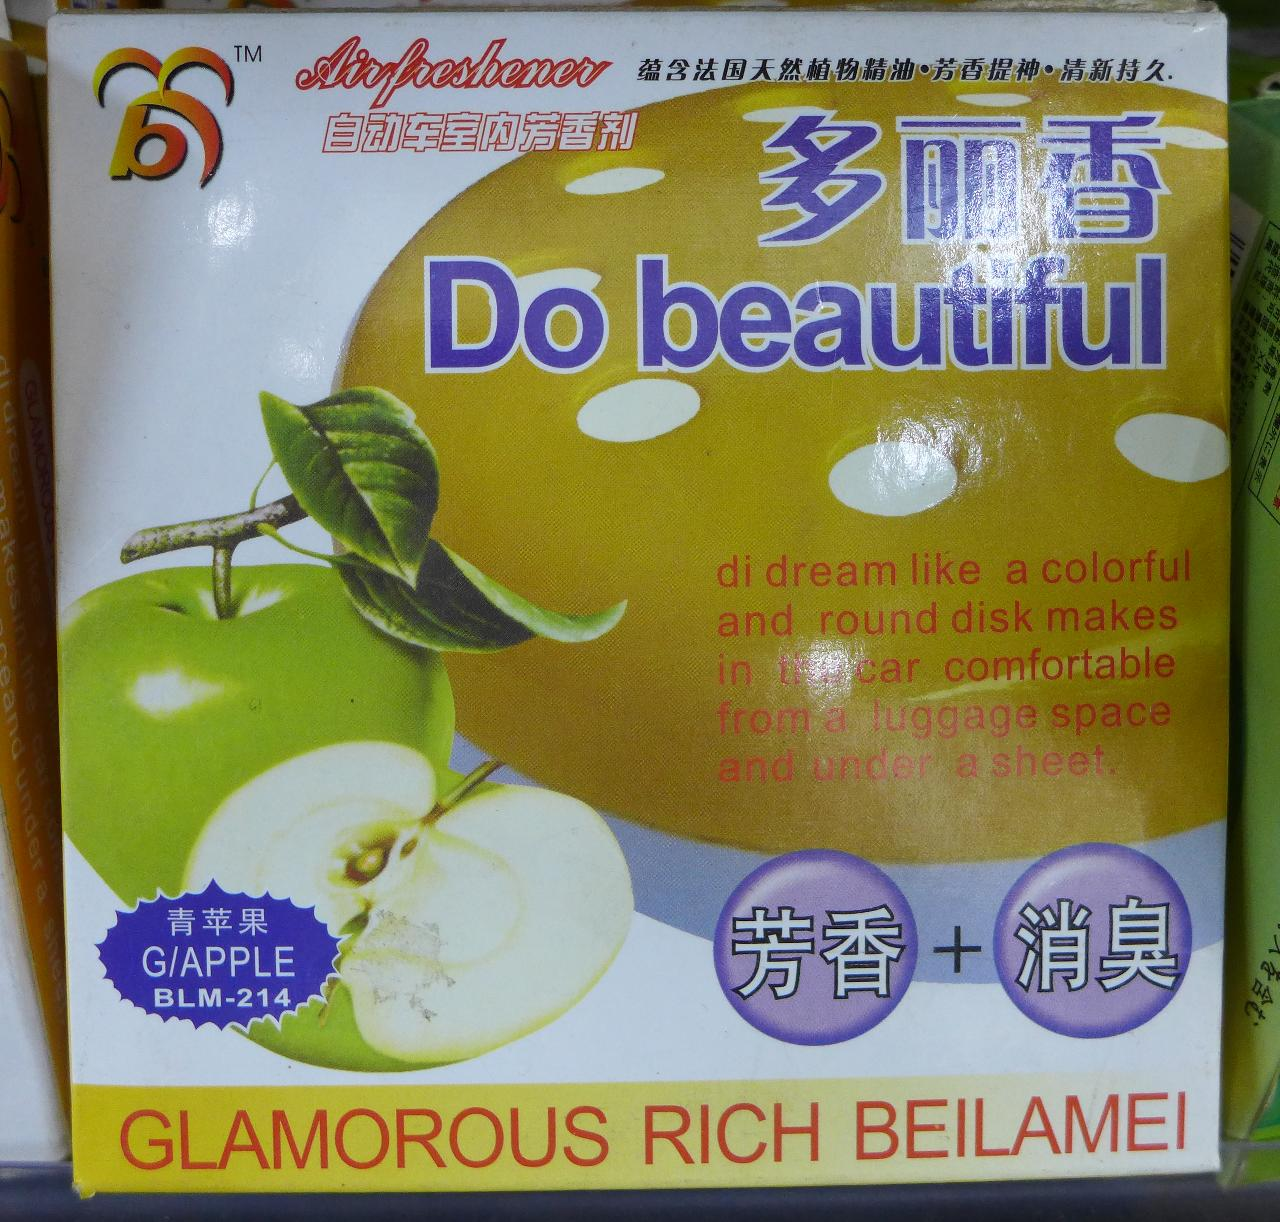 Do beautiful. di dream like a colorful and round disk makes in the car comfortable from a luggage space and under a sheet. GLAMOUROUS RICH BEILAMEI